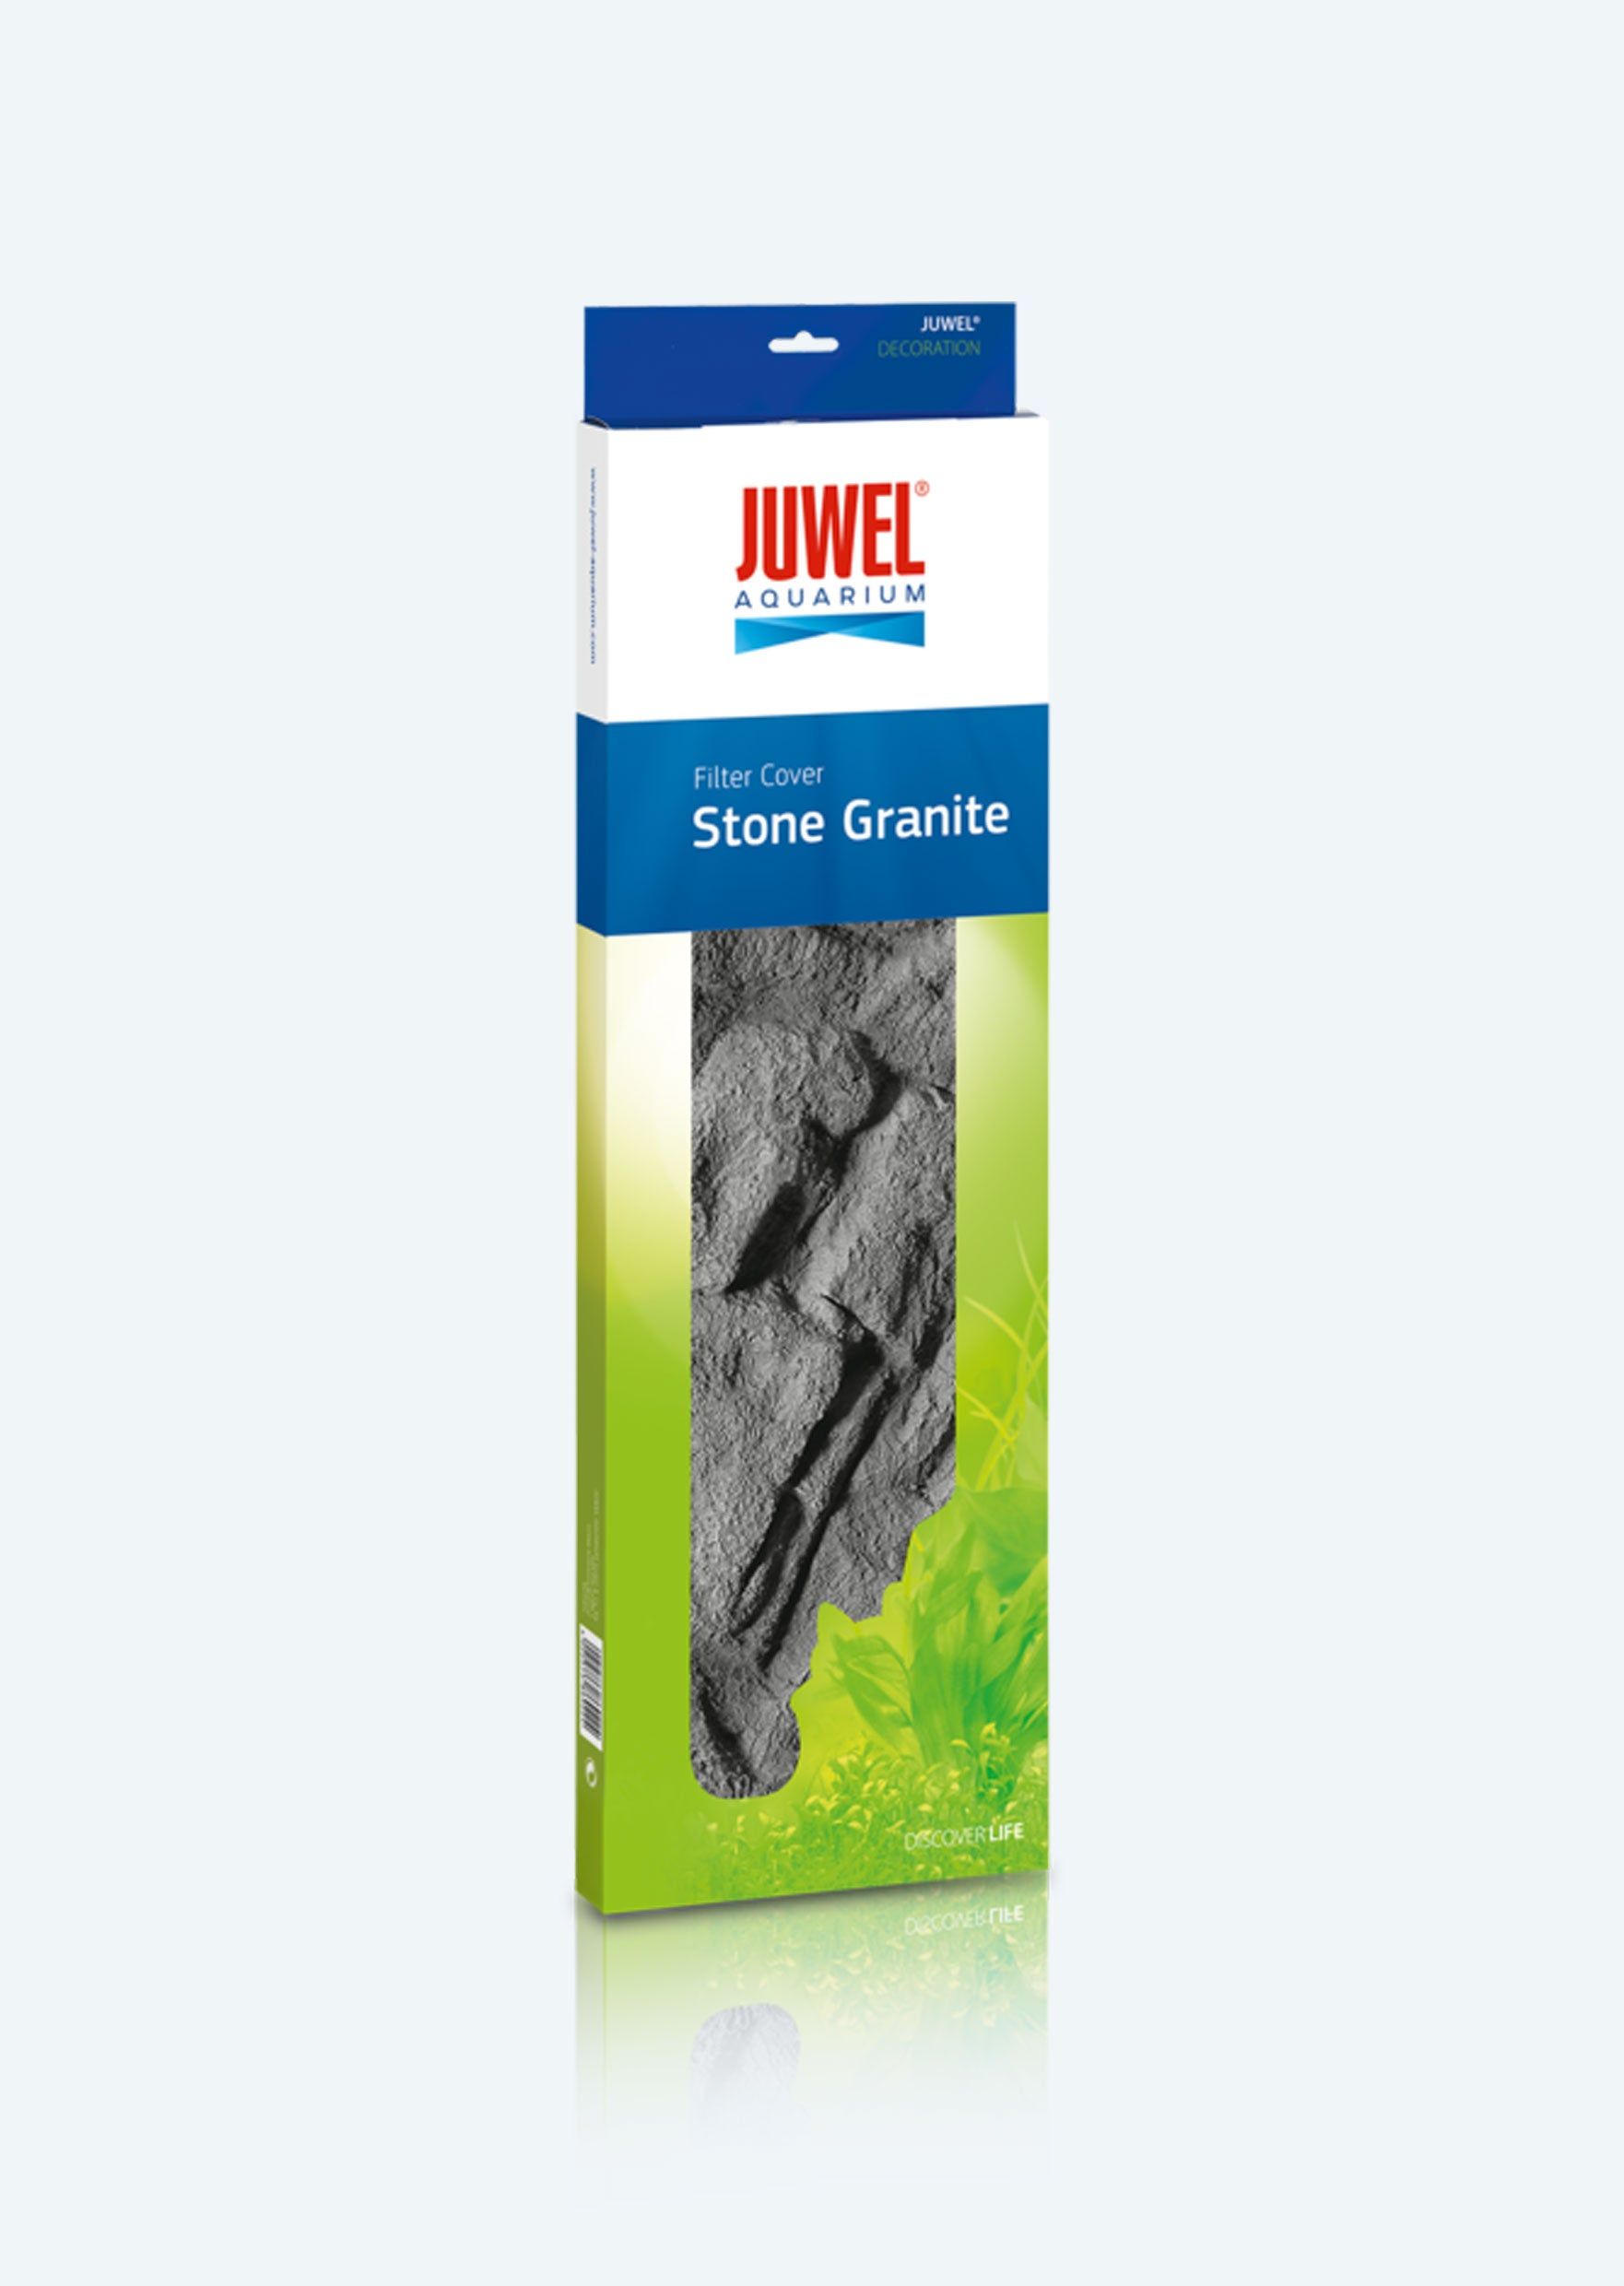 JUWEL Filter Cover: Stone Granite